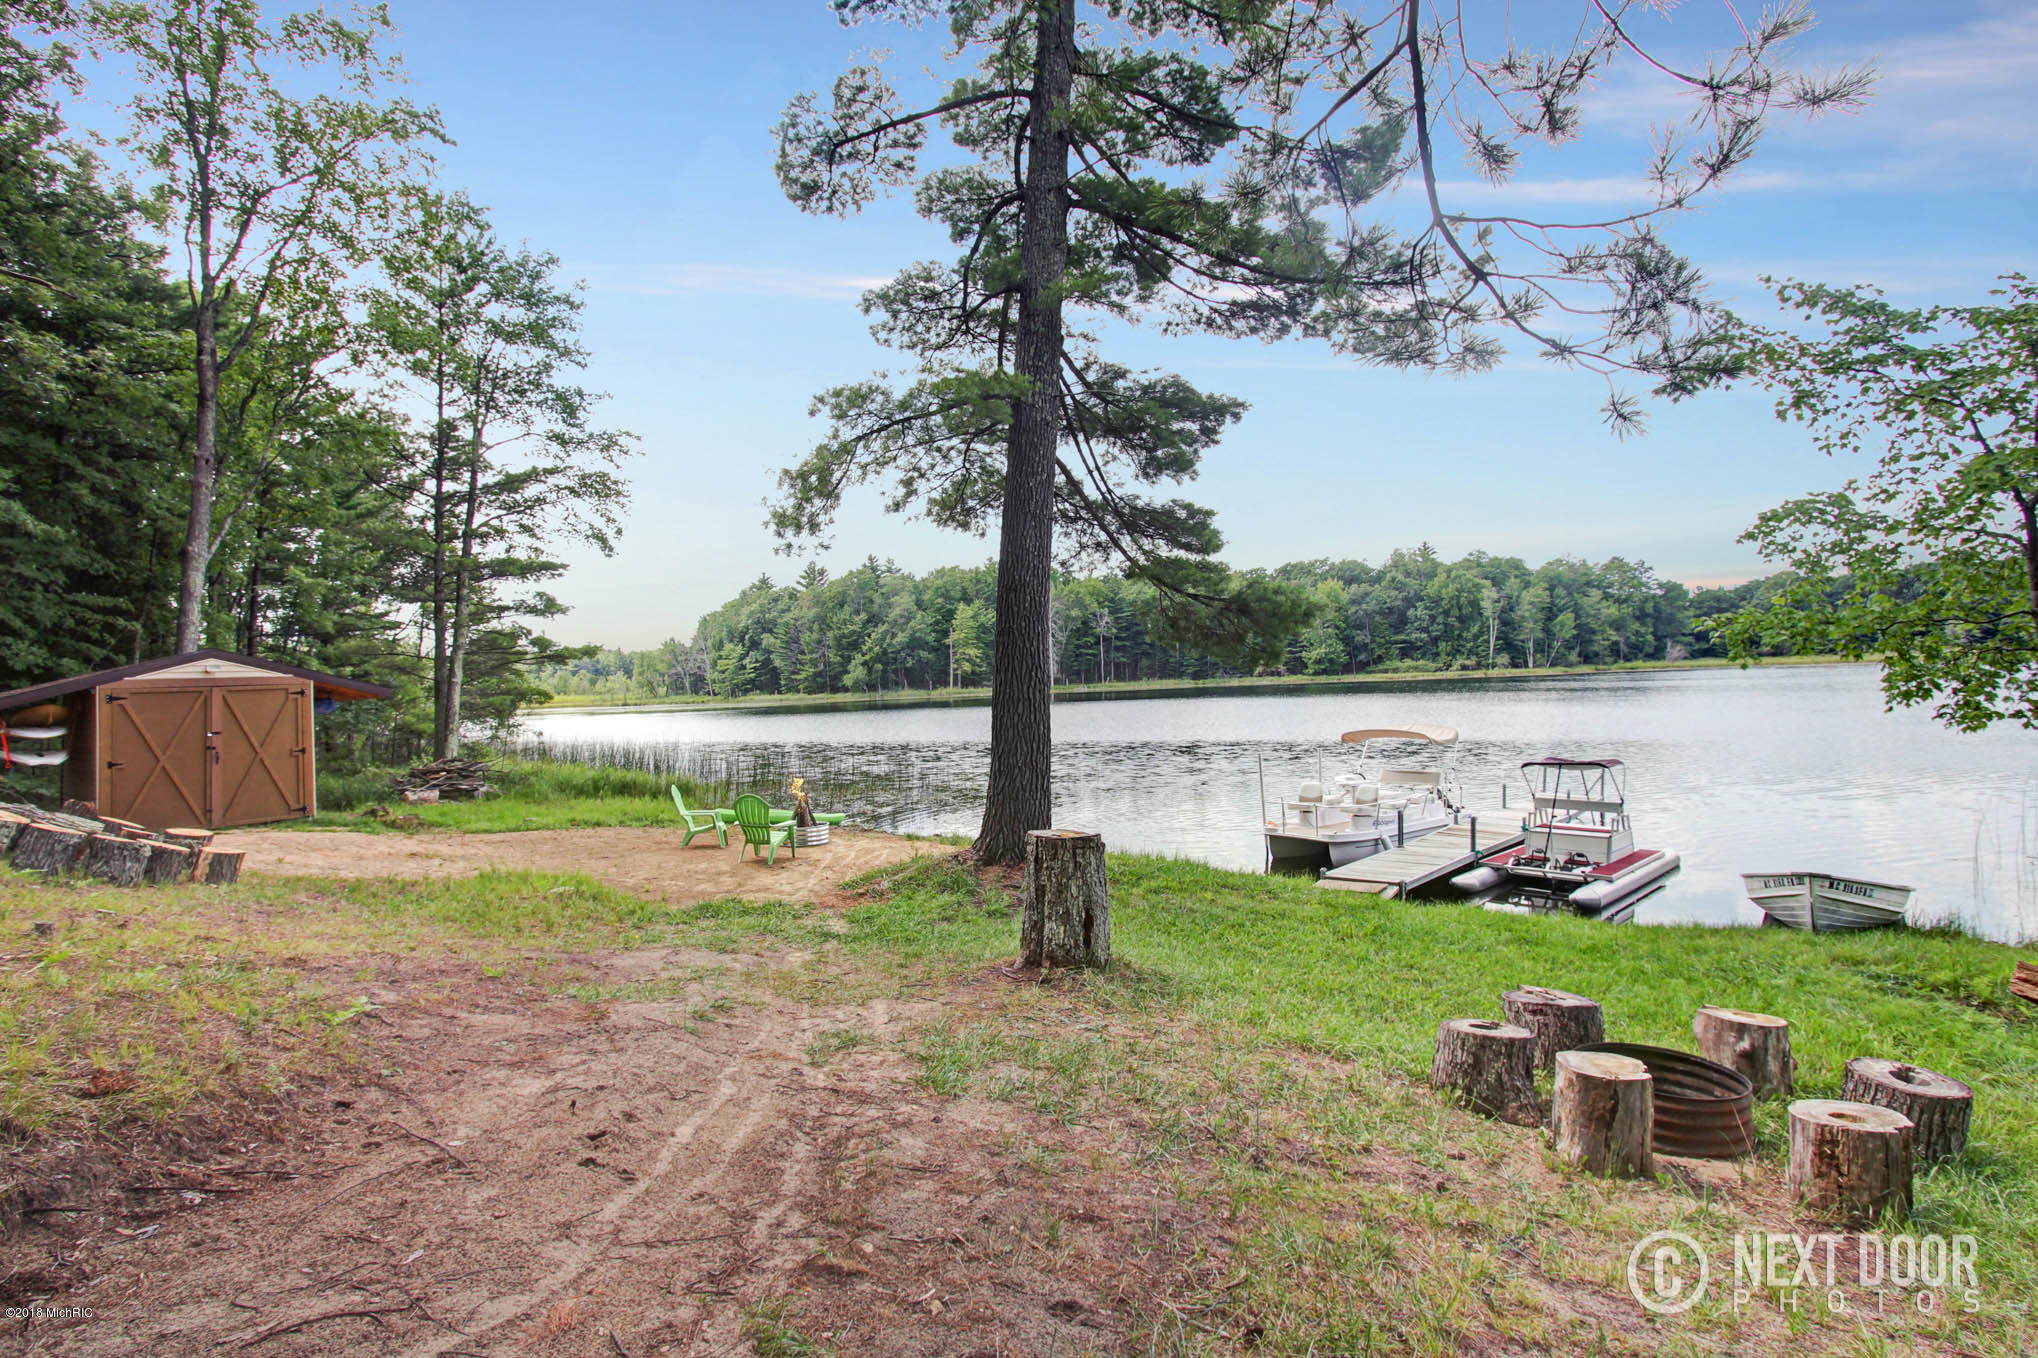 Easy access to waterfront - ATV trail